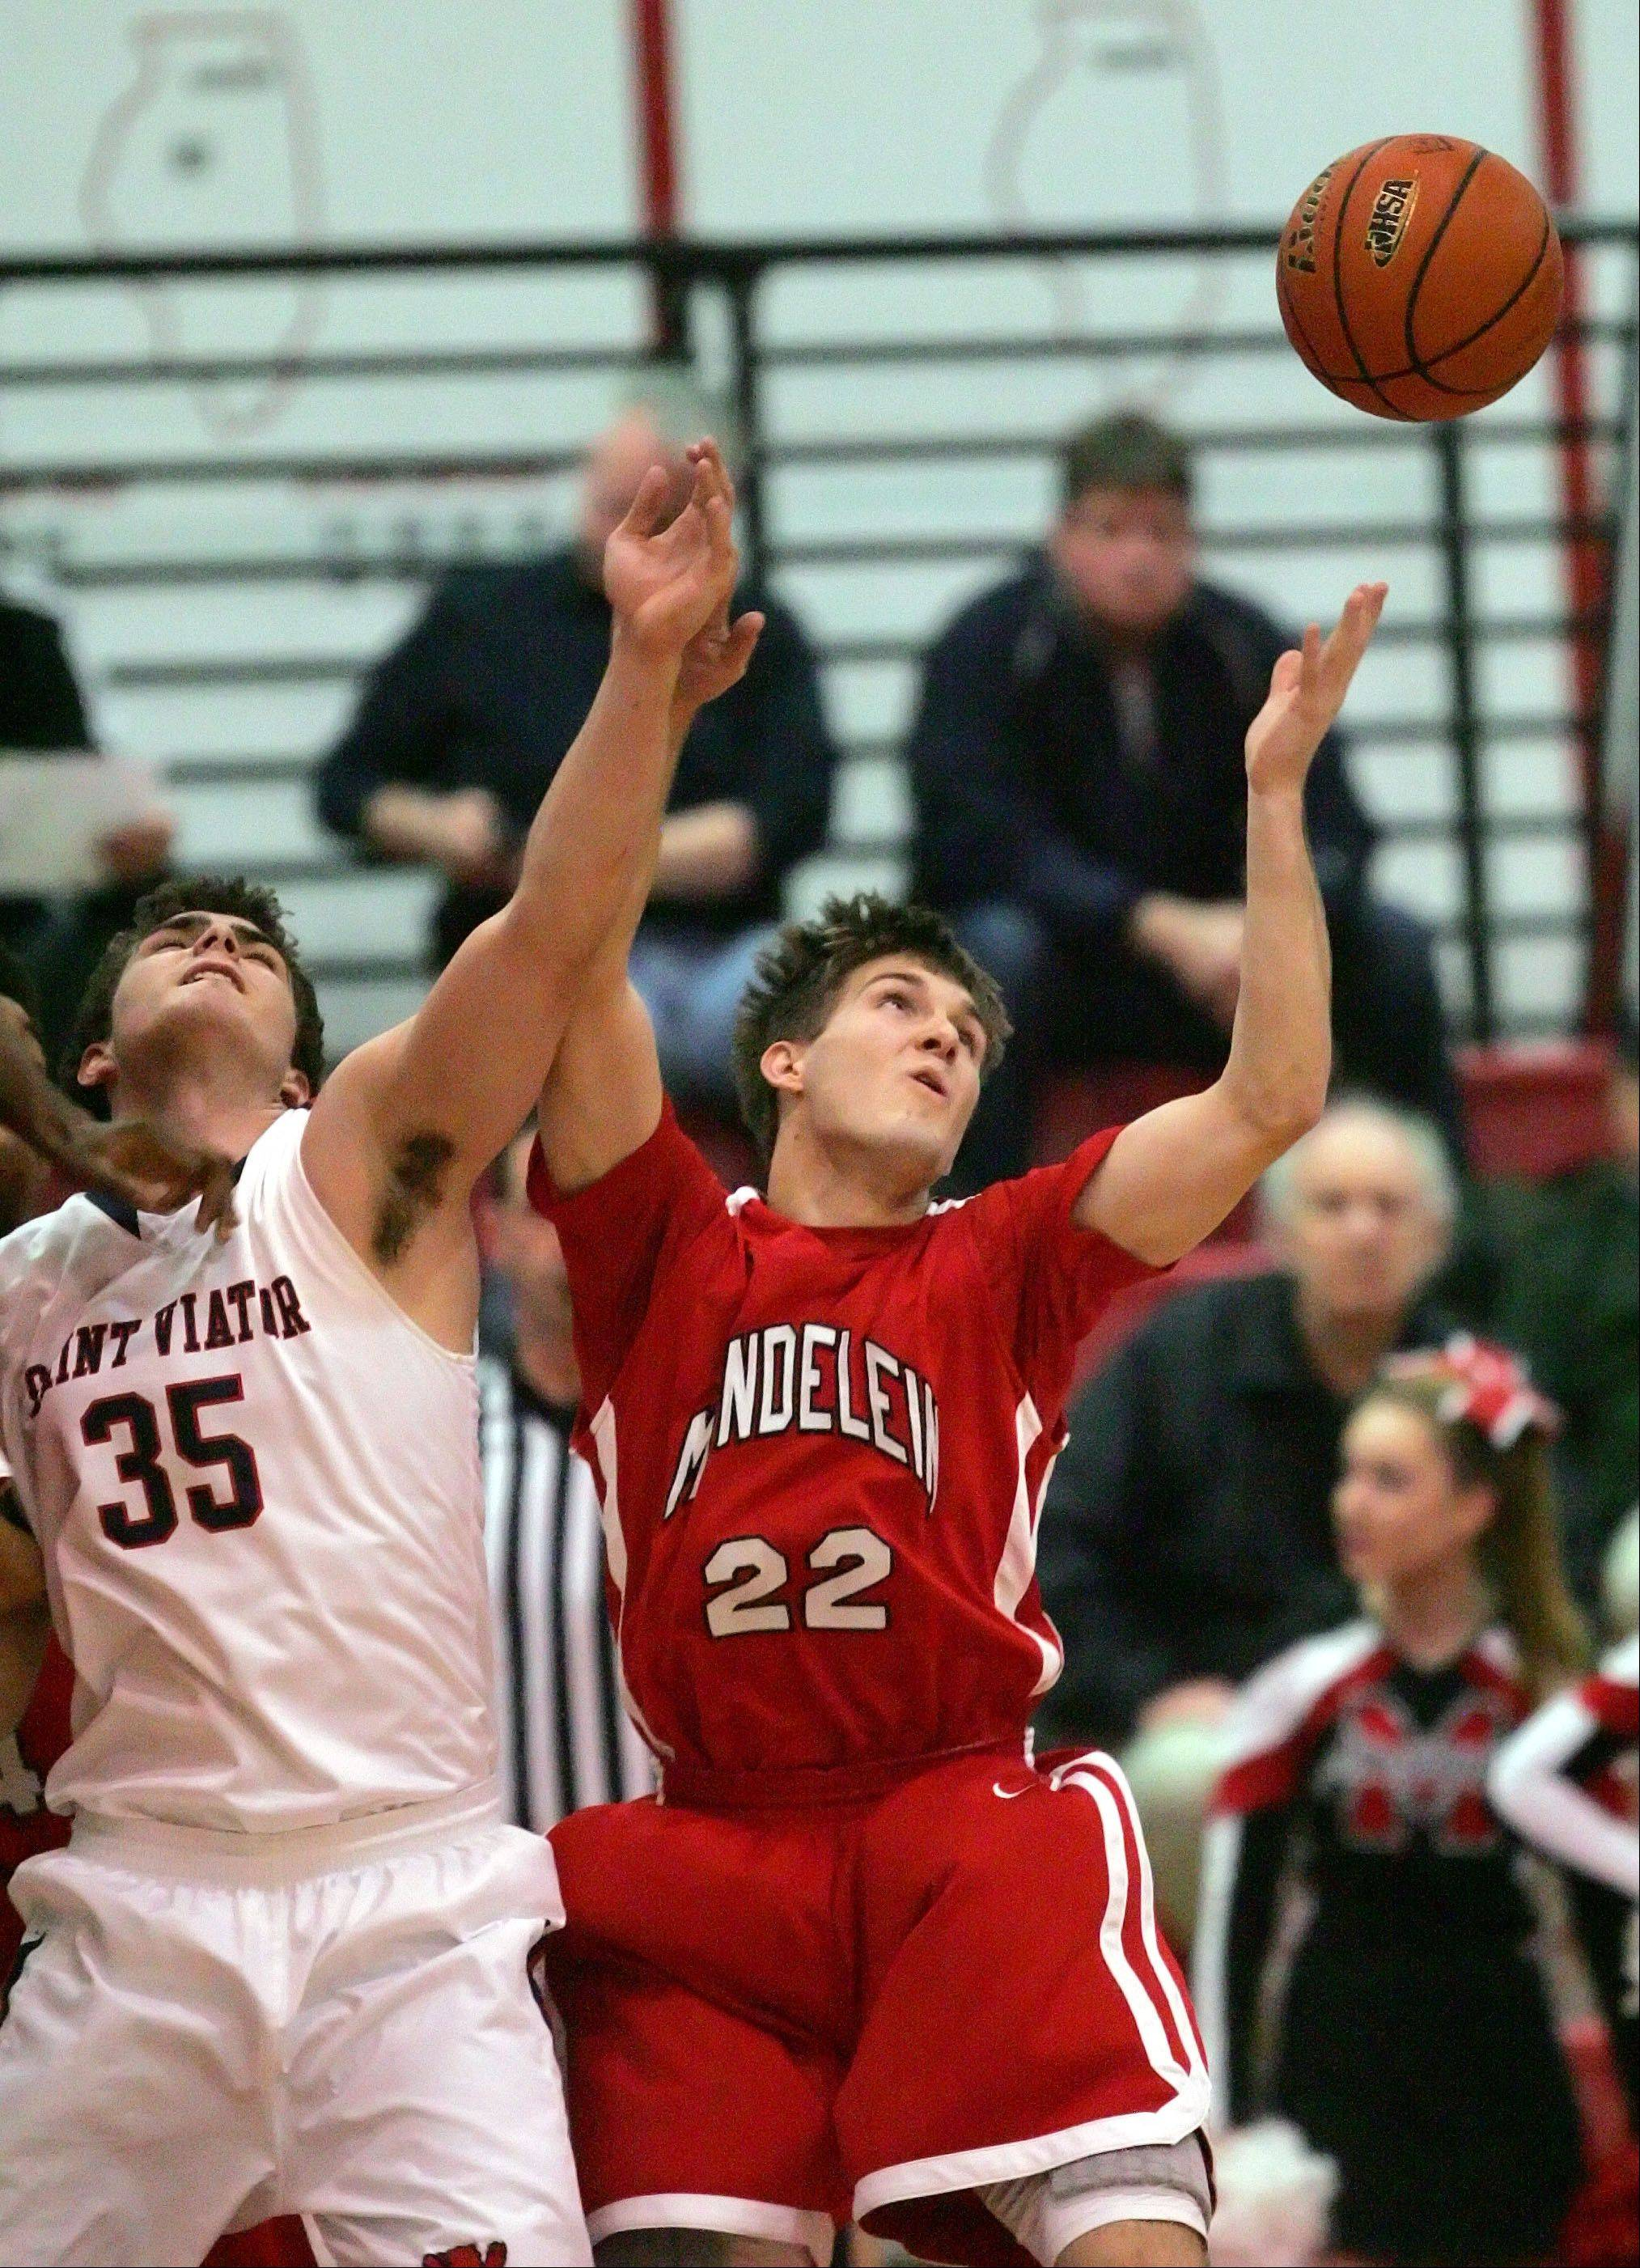 St. Viator Chris Myjak, left, and Mundelein's Robert Knar battle for a rebound.